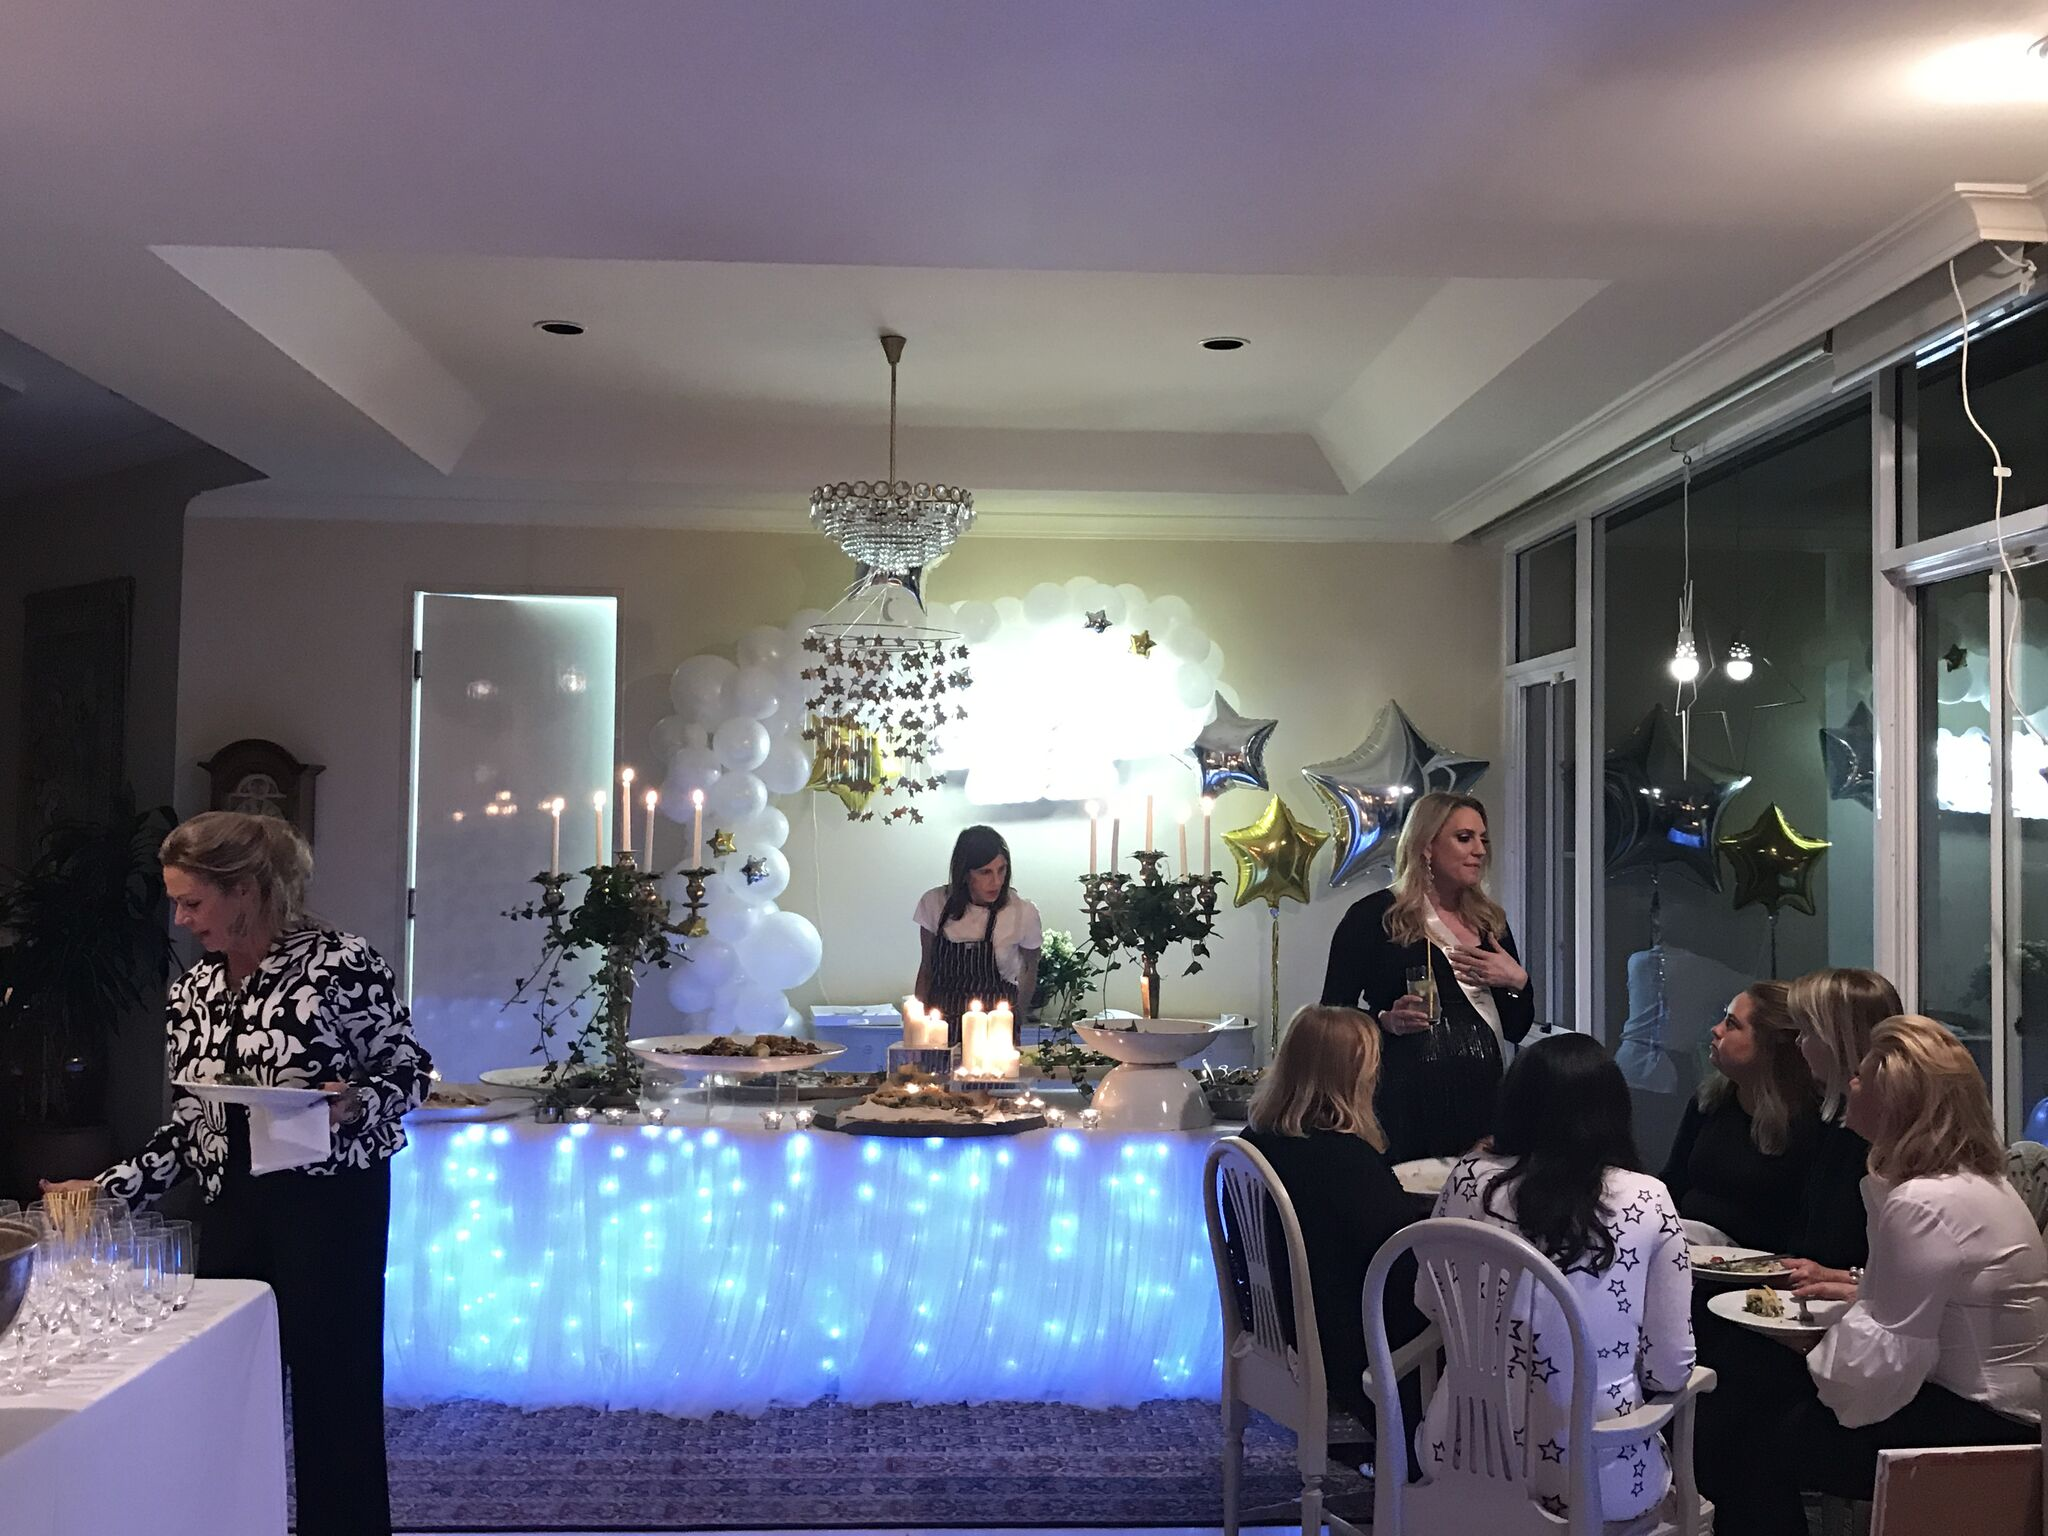 Twinkle Twinkle Little Star Themed Baby Shower - Party Decorations and Set Up